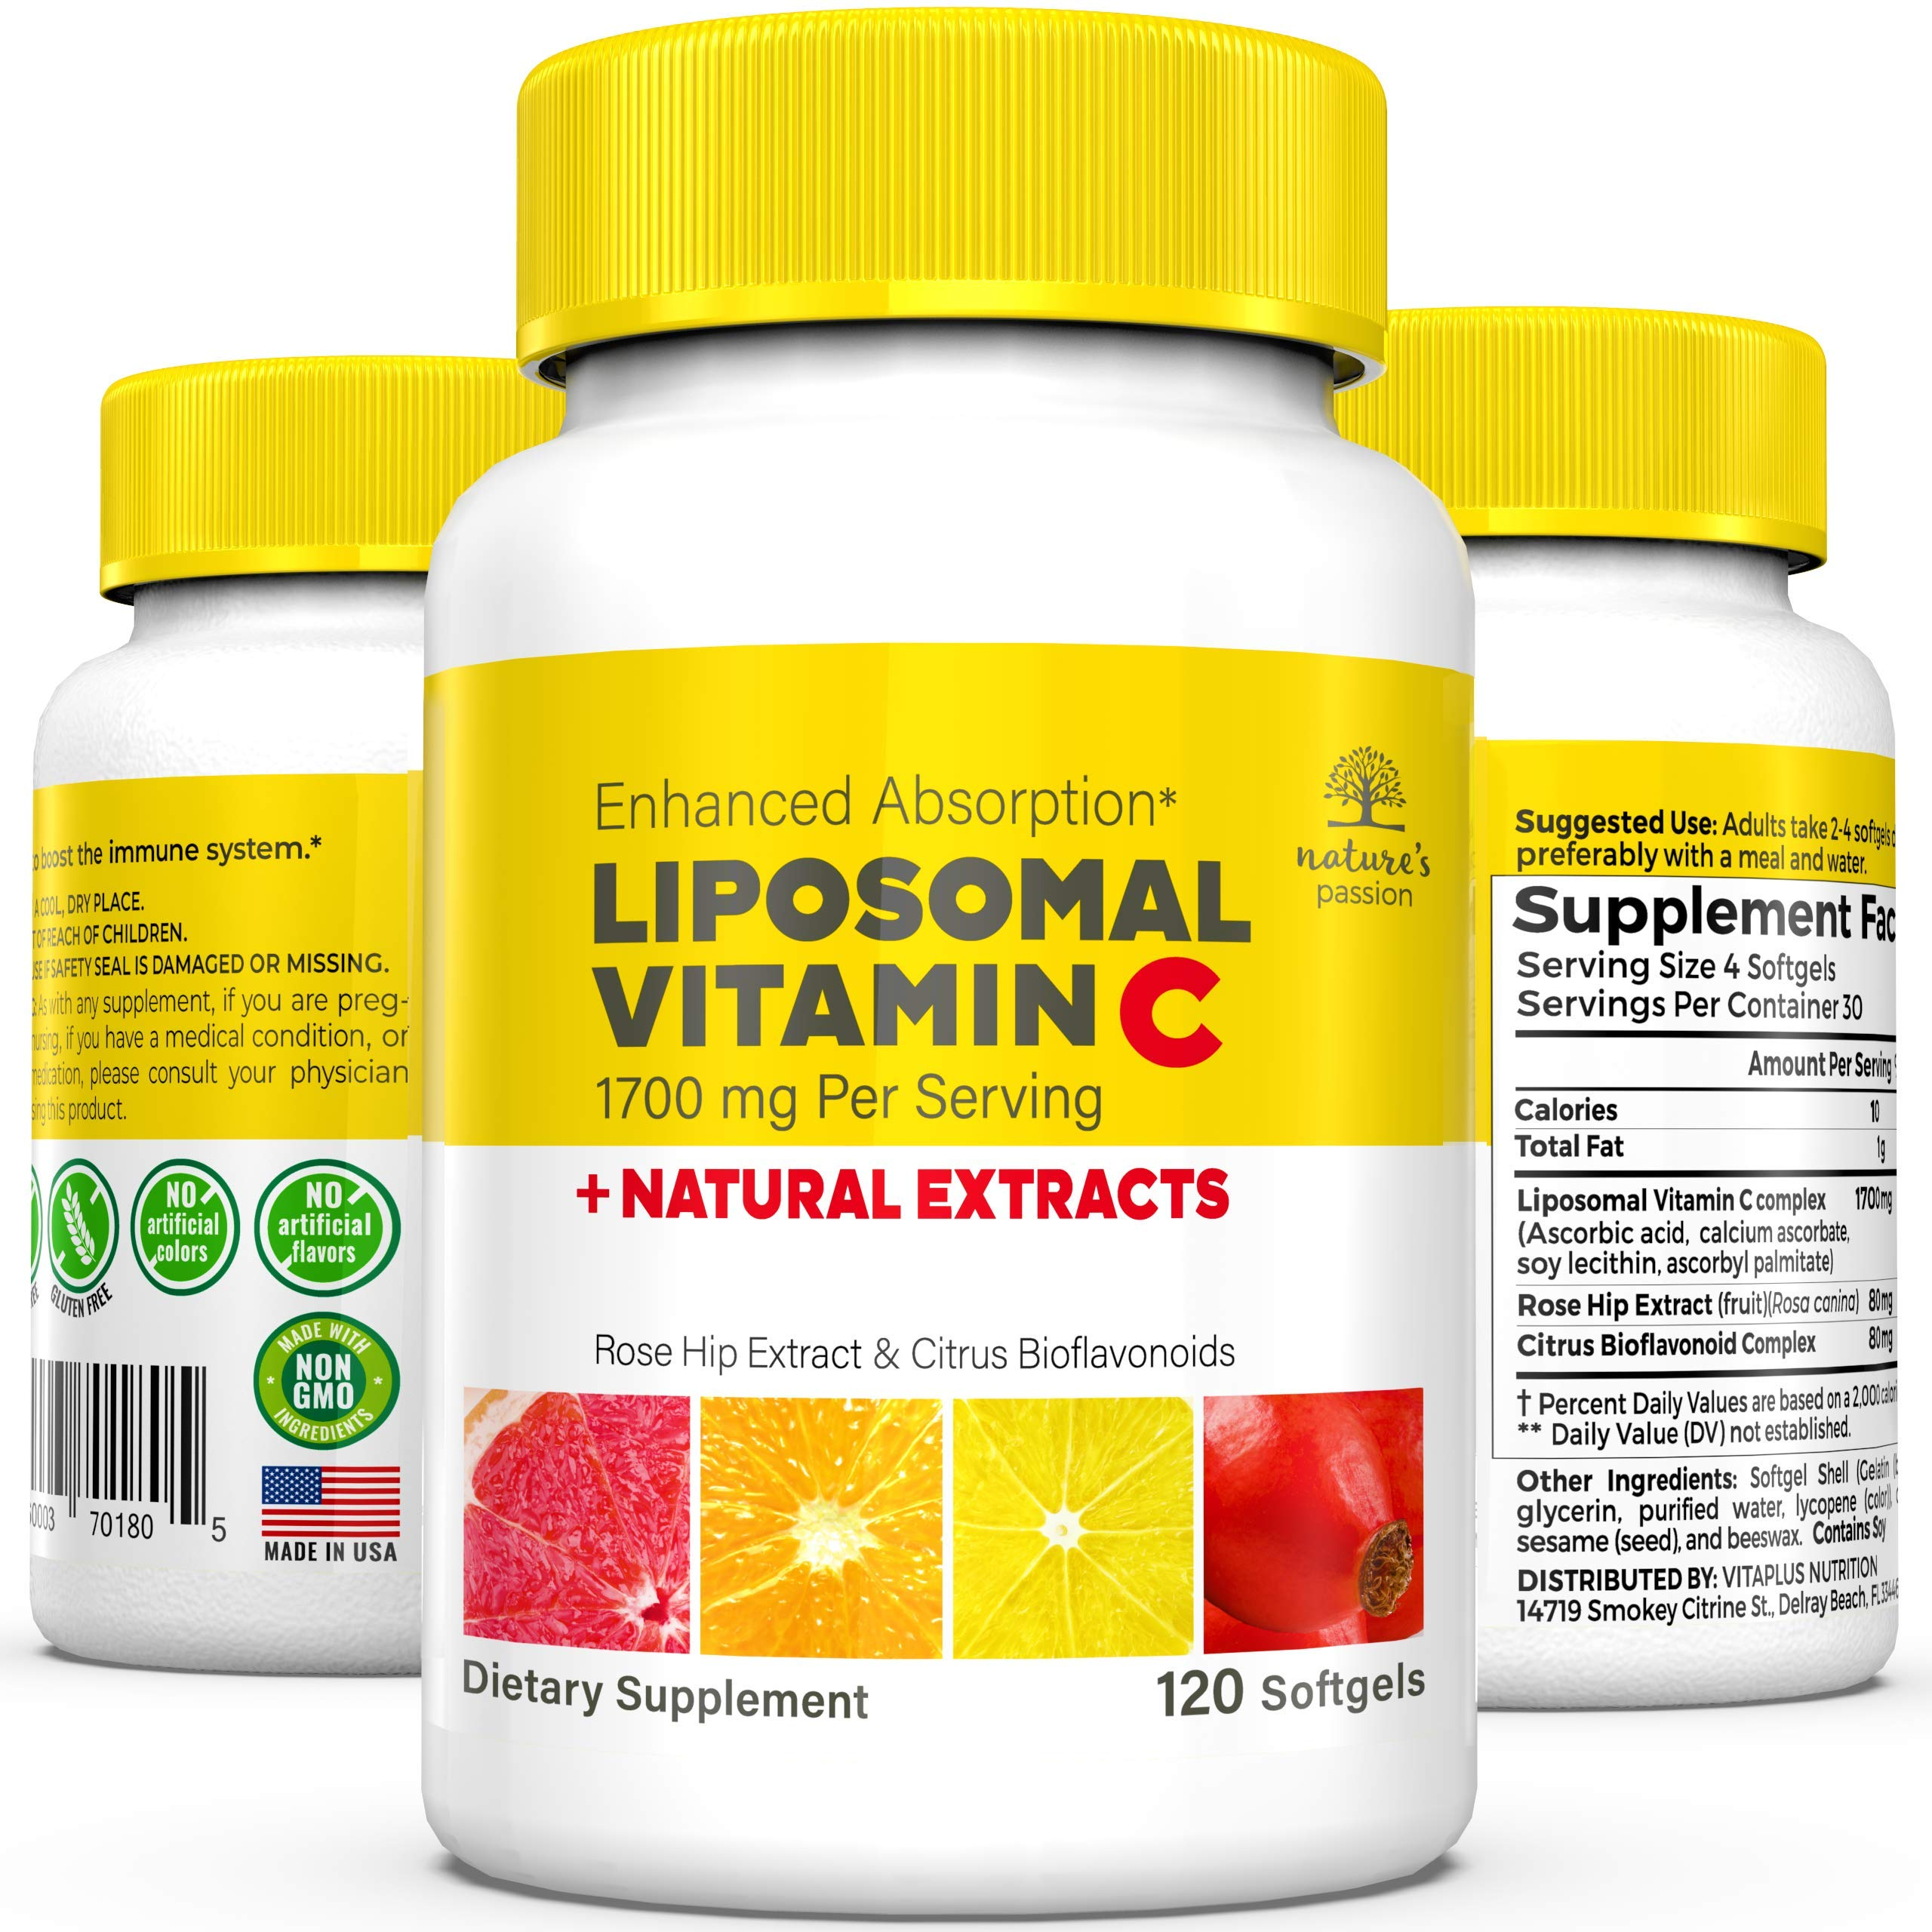 Nature's Passion Liposomal Vitamin C - 1700mg Liposomal VIT C Immune Booster with Natural Rosehip Extract & Citrus Bioflavonoids. 12hr Time Release Vitamin C Capsules for High Absorption, 120 caps